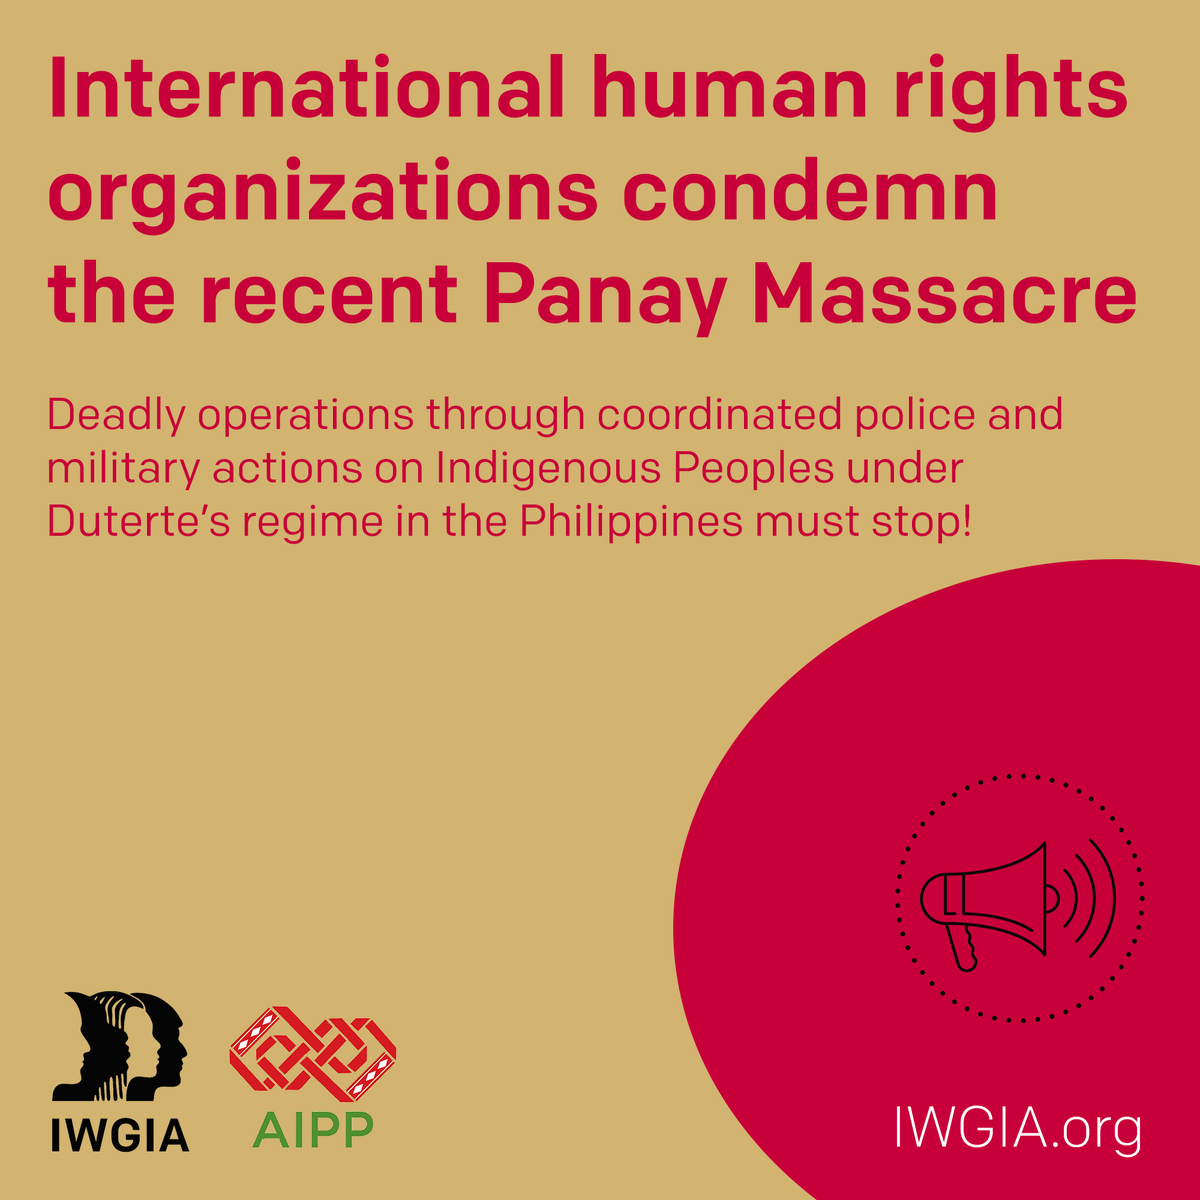 🇵🇭 121 organisations condemn the Panay Massacre where 9 Tumandok community members were killed & 17 arrested. They have consistently opposed #humanrights violations & advocated for the protection of their rights as an #Indigenouspeople bit.ly/2Km1gPk ✊#Philippines